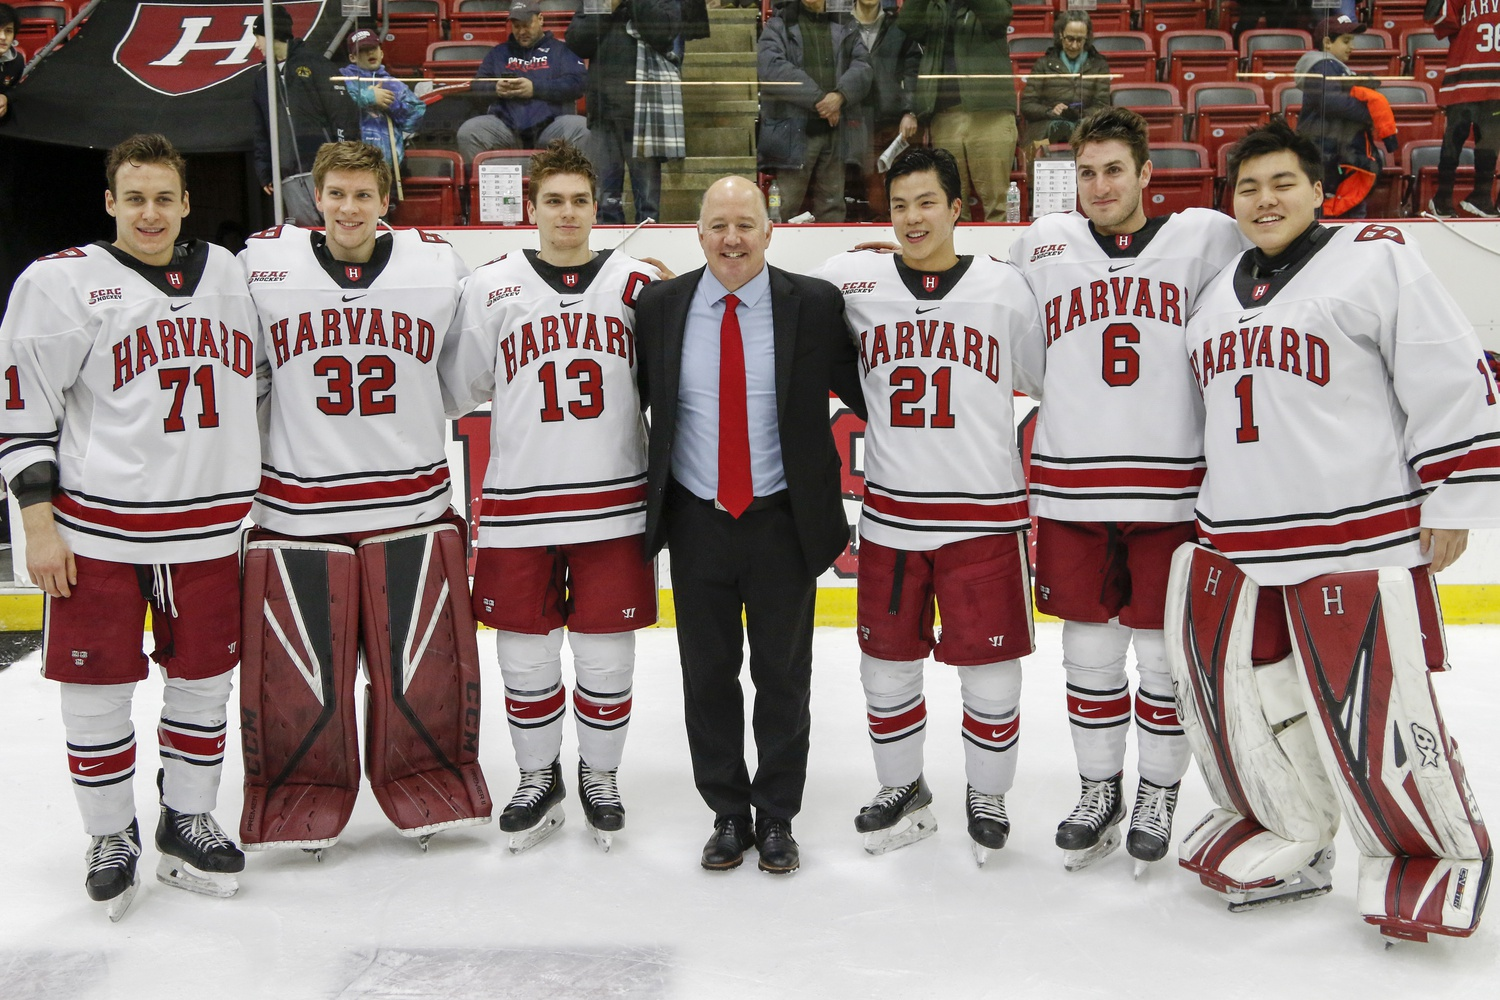 The senior class has won 75 games in its four years at Harvard, has been to the Frozen Four once, and has had three trips to Lake Placid.